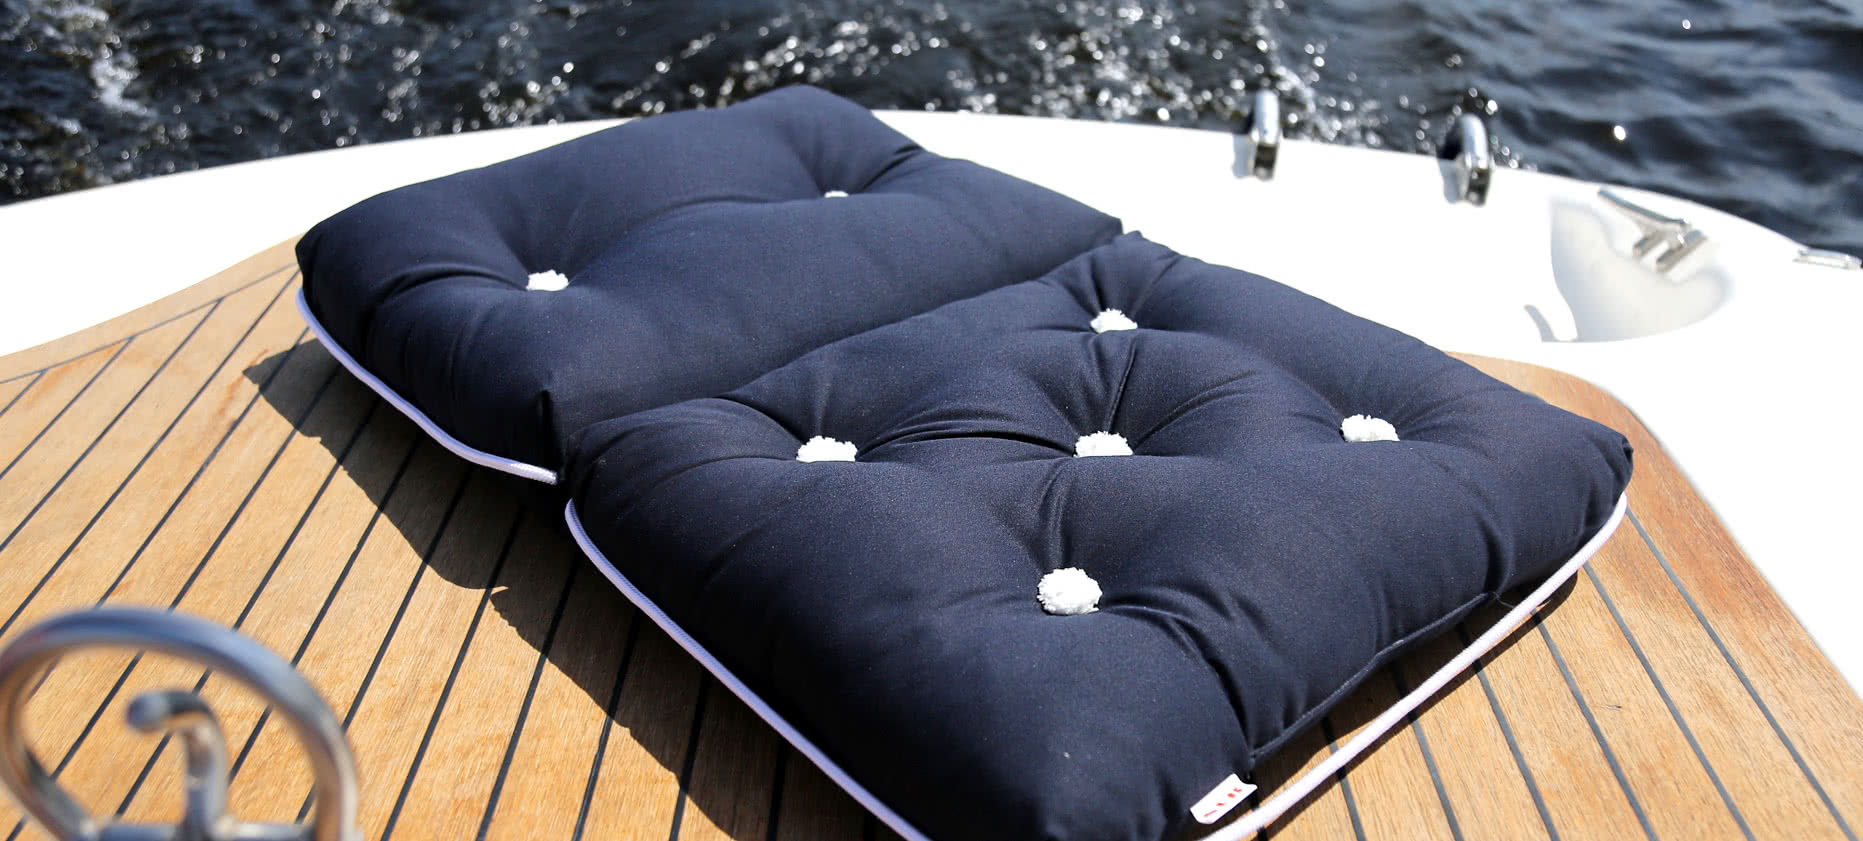 All about Kapok Cushions